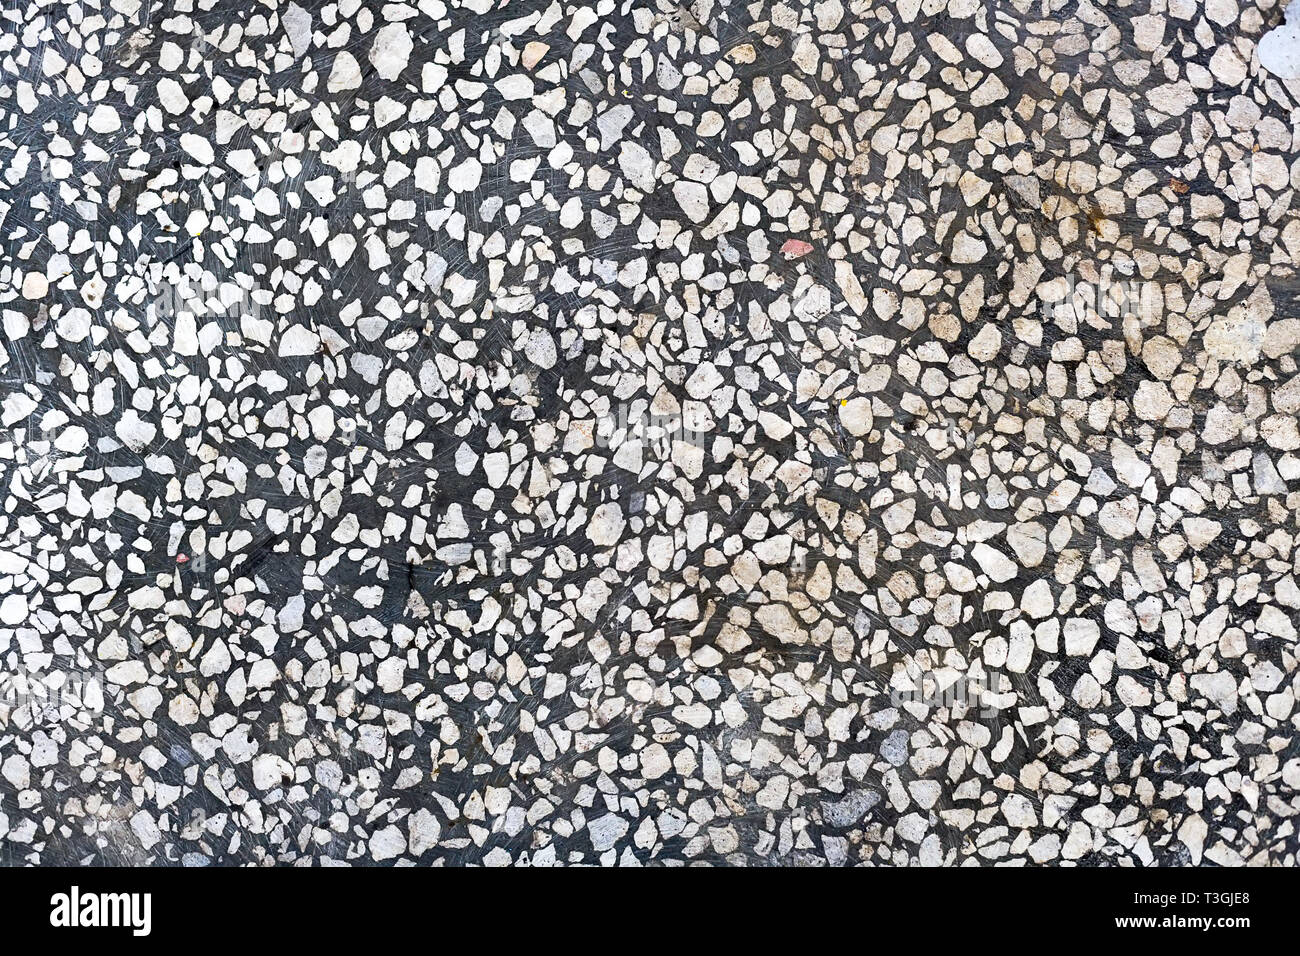 Abstract background. Gray concrete floor with white stone chips. Smooth polished surface. - Stock Image